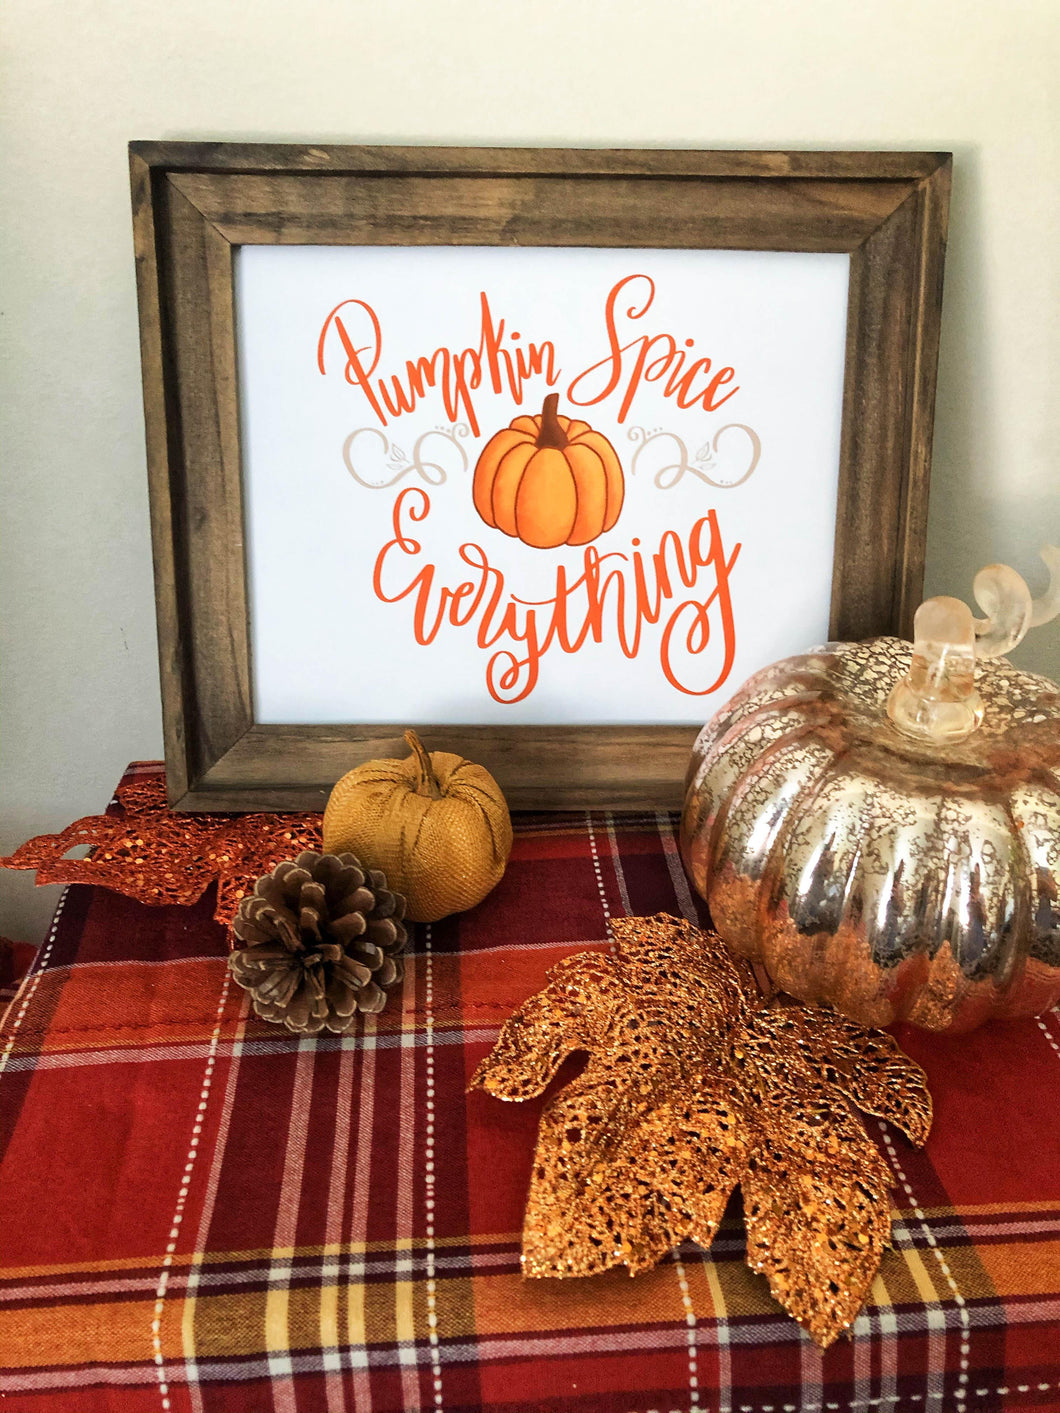 Pumpkin Spice Everything Hand Lettered Print Kmoe Design Co.